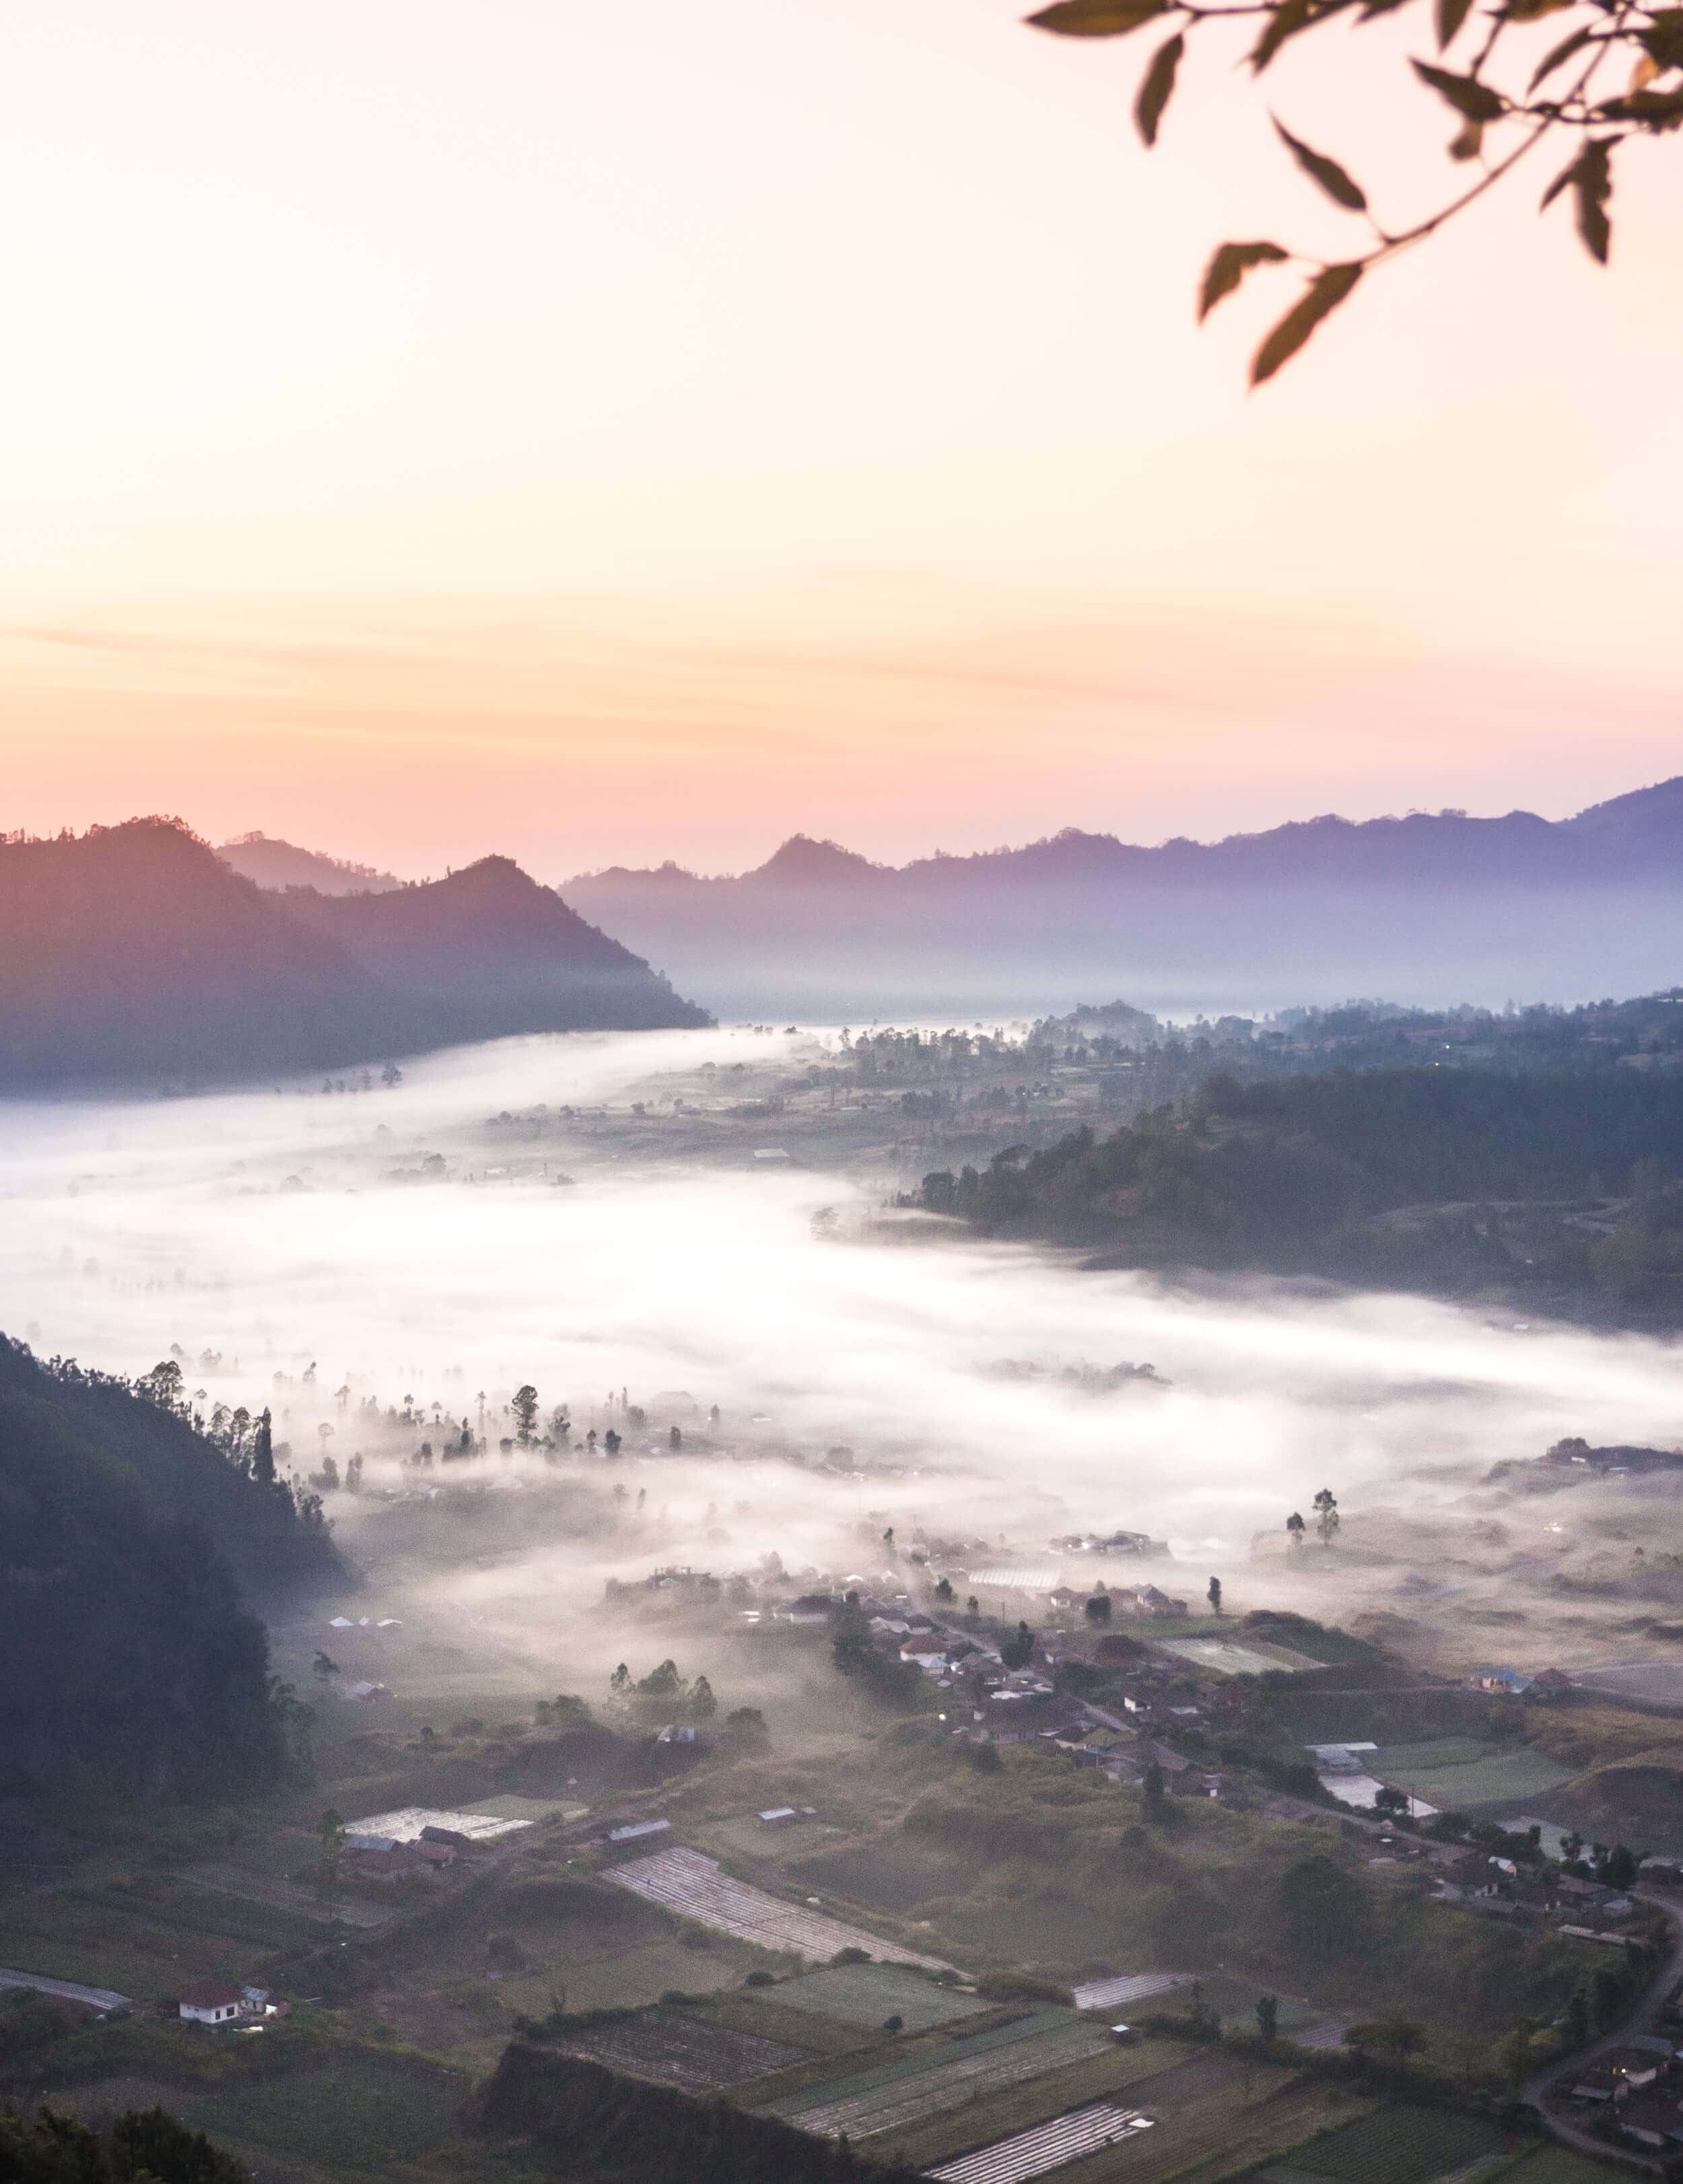 Sunrise over Pinggan Village in Bali - An incredible experience